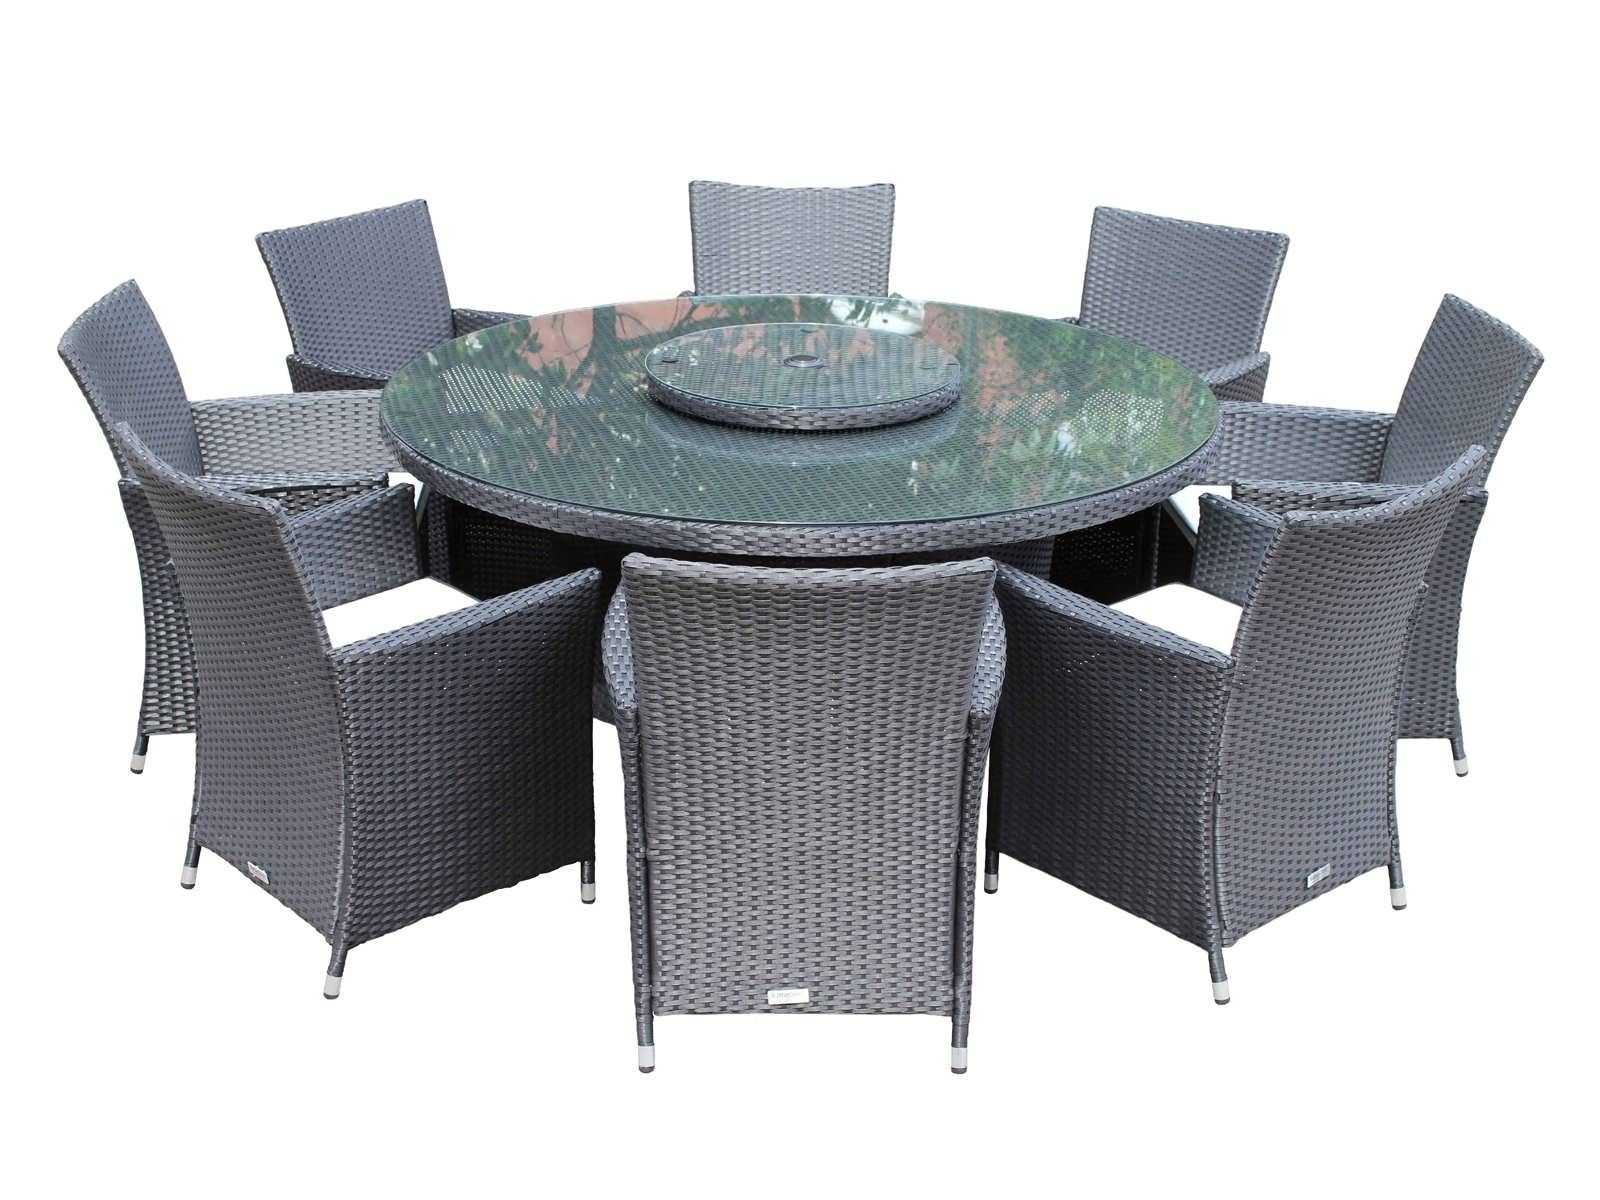 8 Cambridge chairs with large round table dining set with  : 2876dad1d96f54e9d878acdb091d0336 from www.pinterest.com size 1600 x 1200 jpeg 295kB